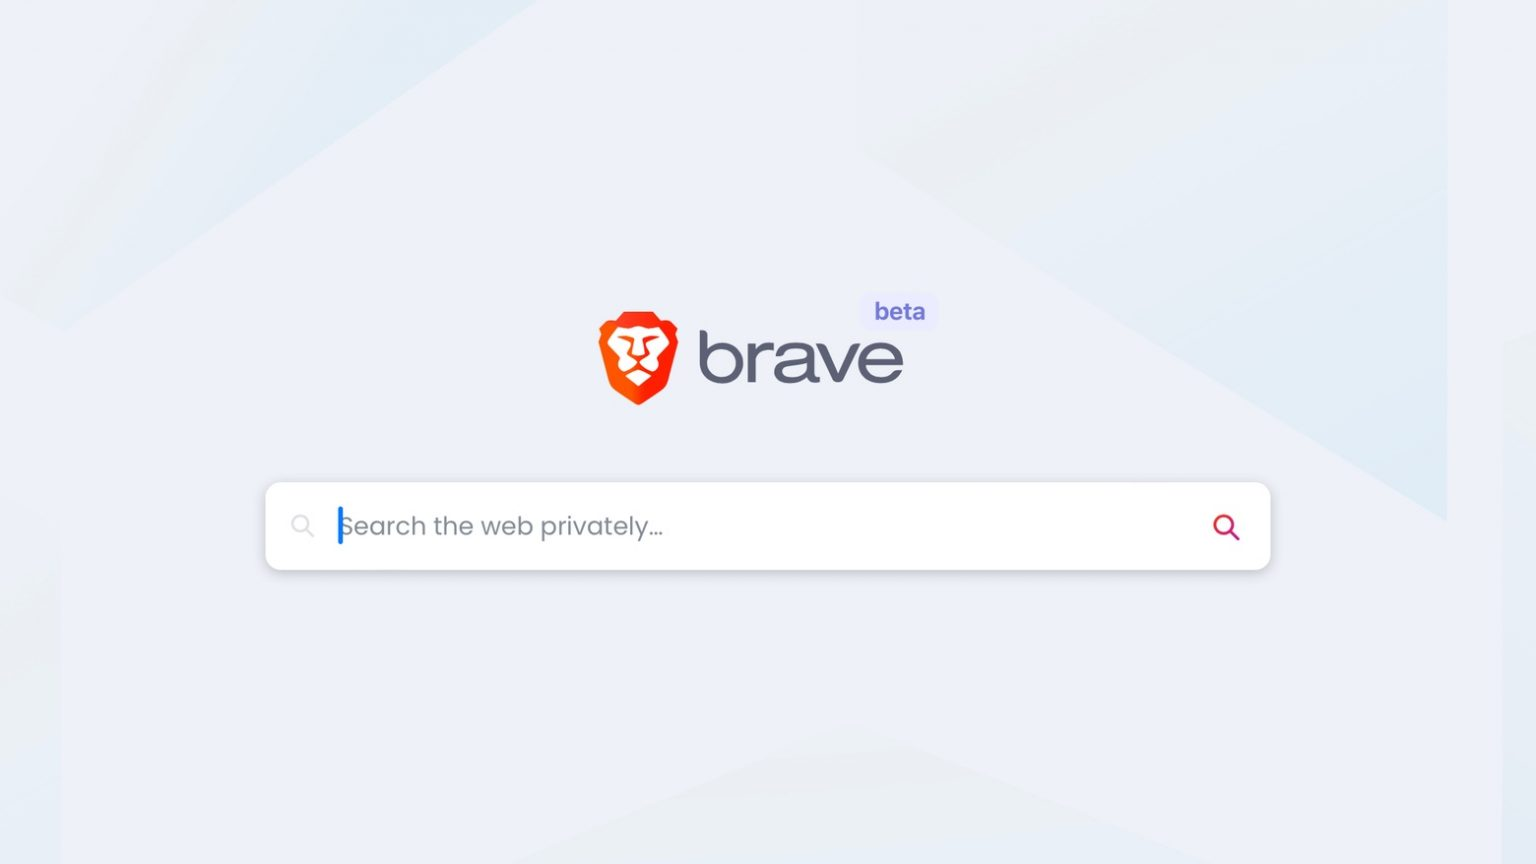 Brave browser bravely takes on Google with privacy-focused search